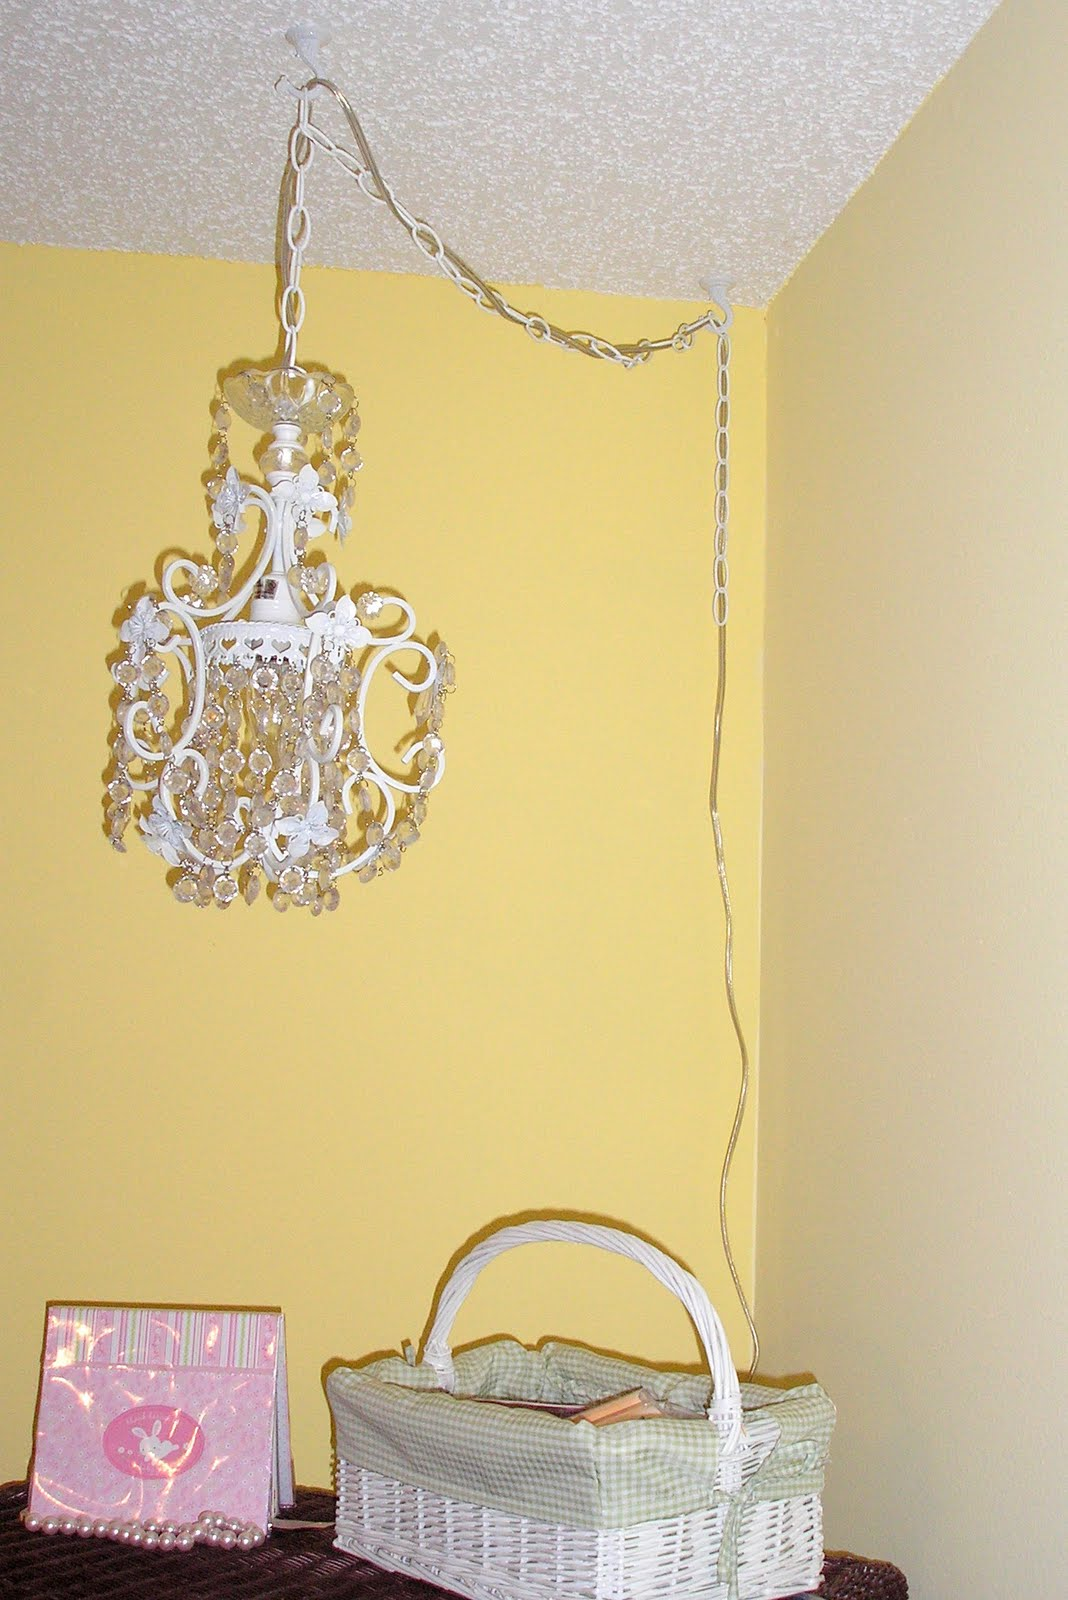 alexiajean crafts chandelier or cord cover. Black Bedroom Furniture Sets. Home Design Ideas